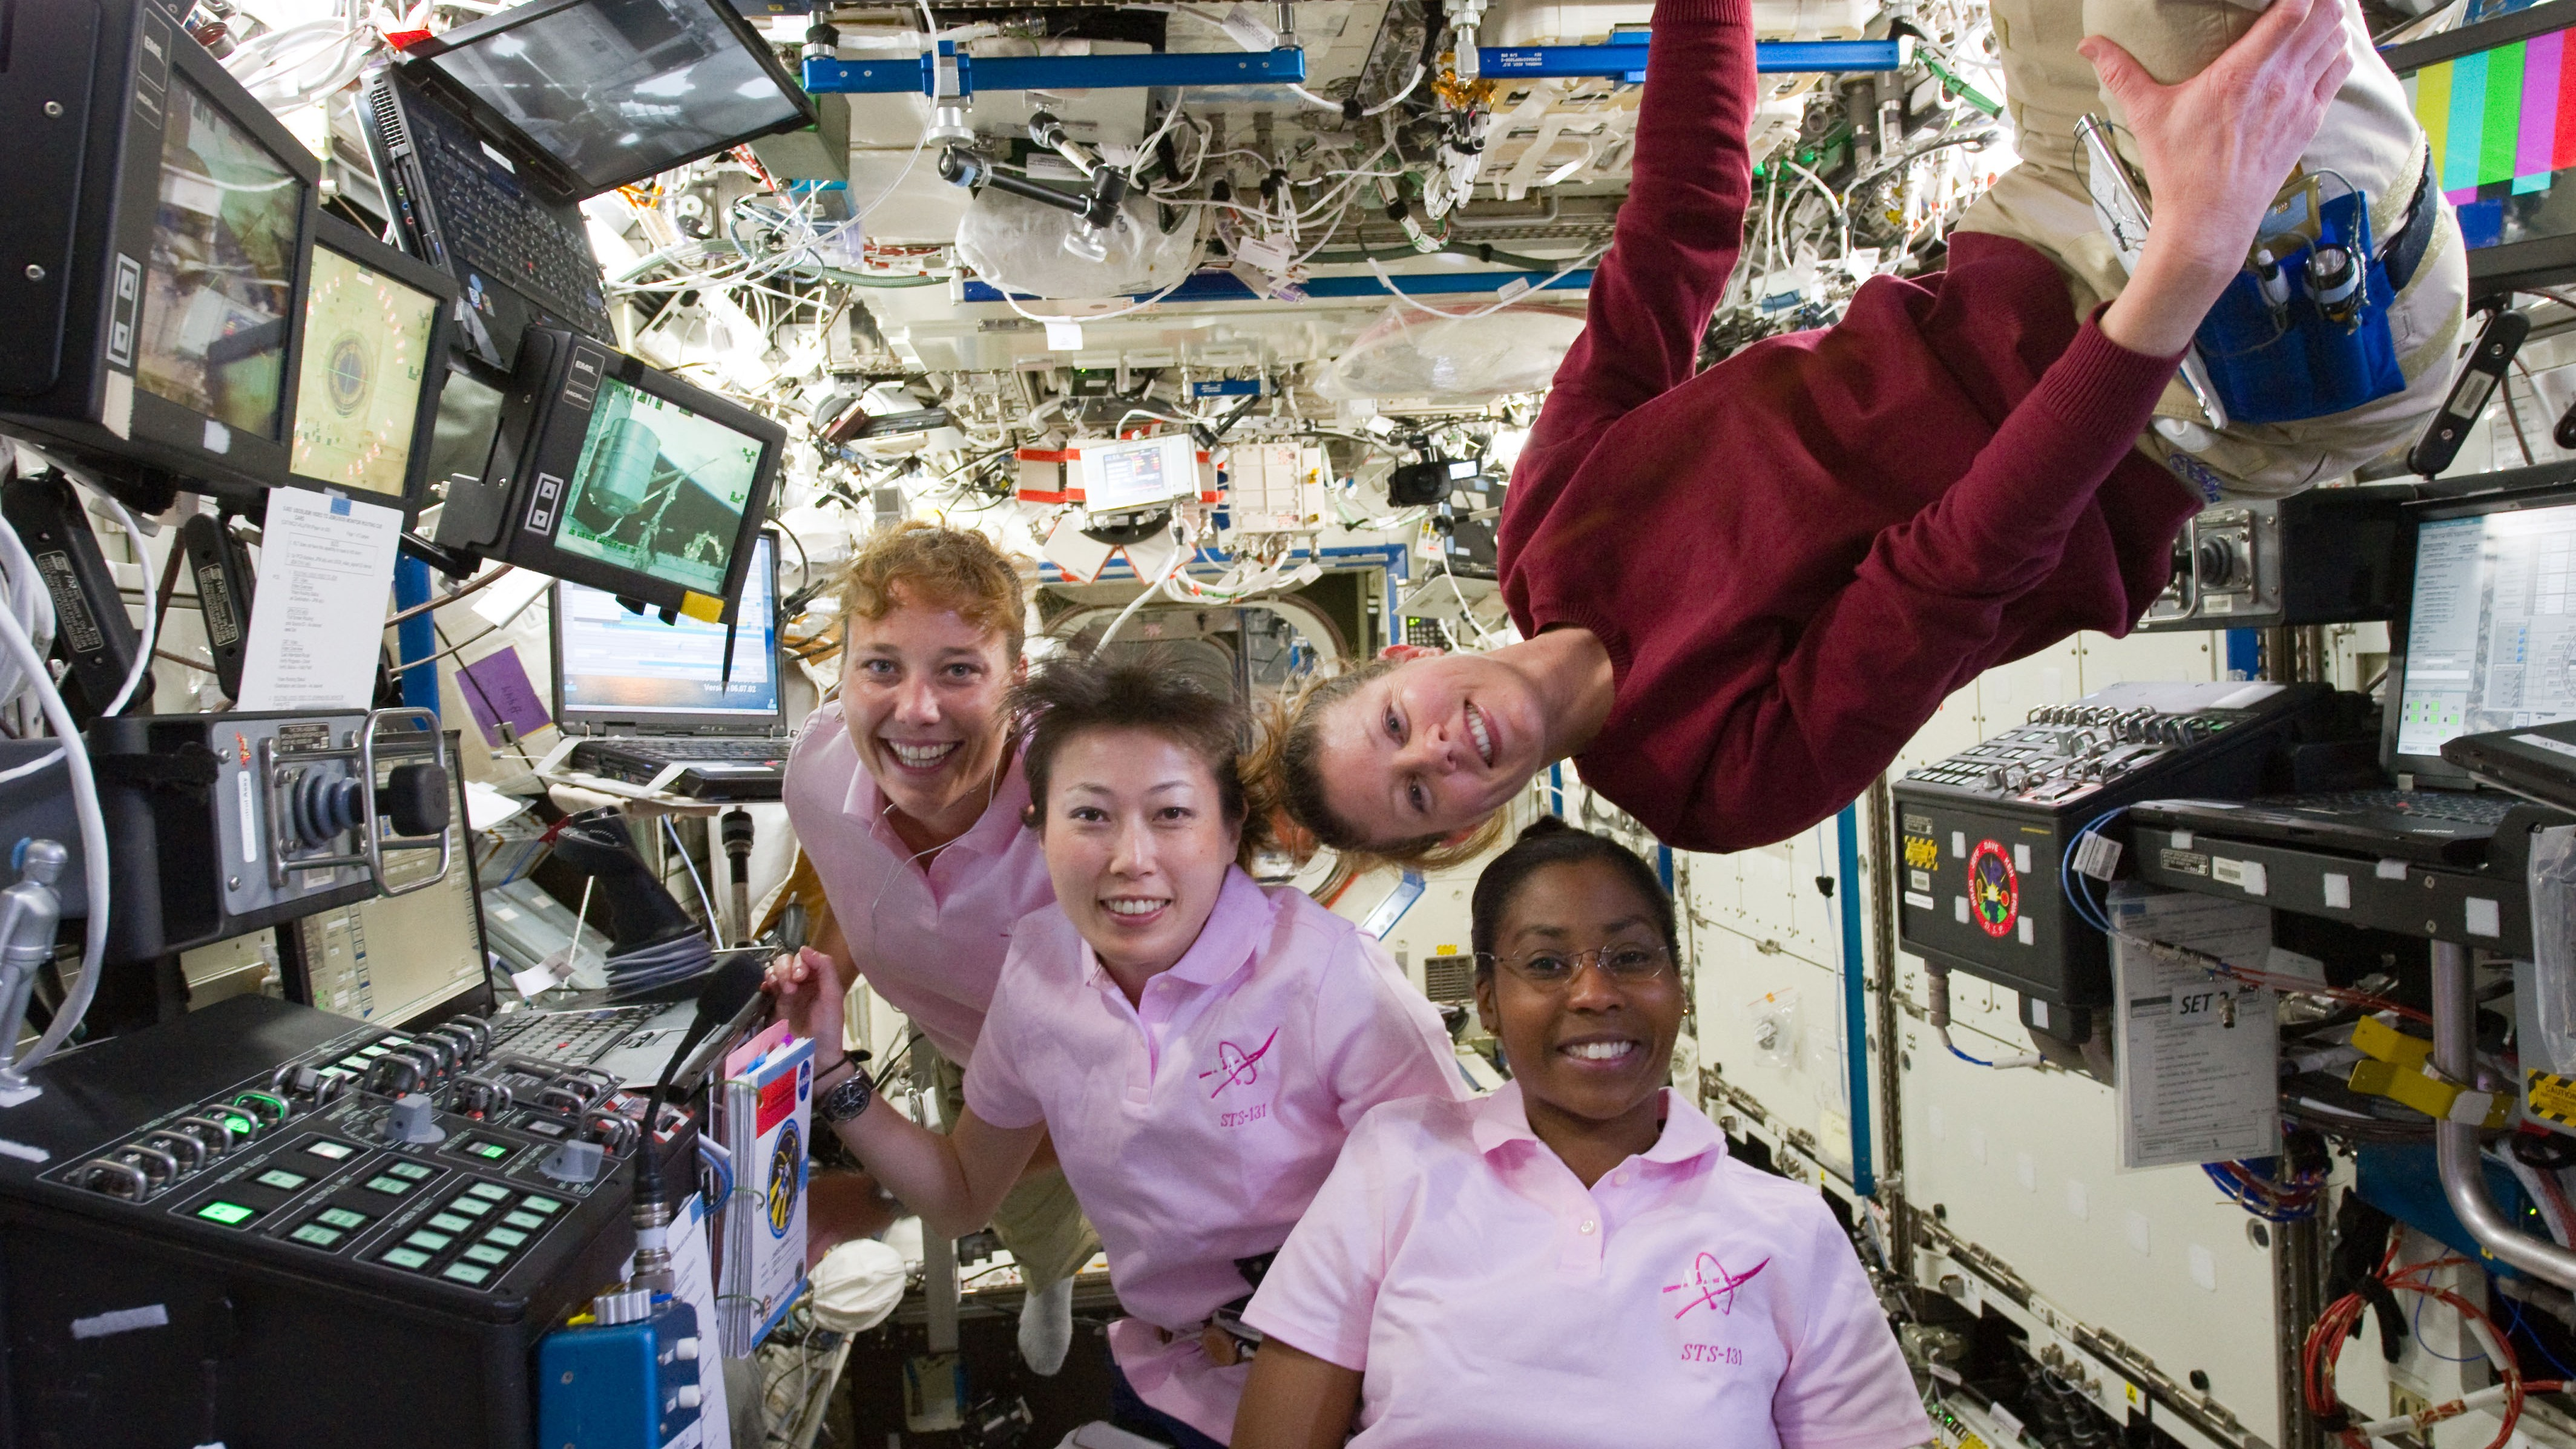 What Happens When You Get Your Period in Space?